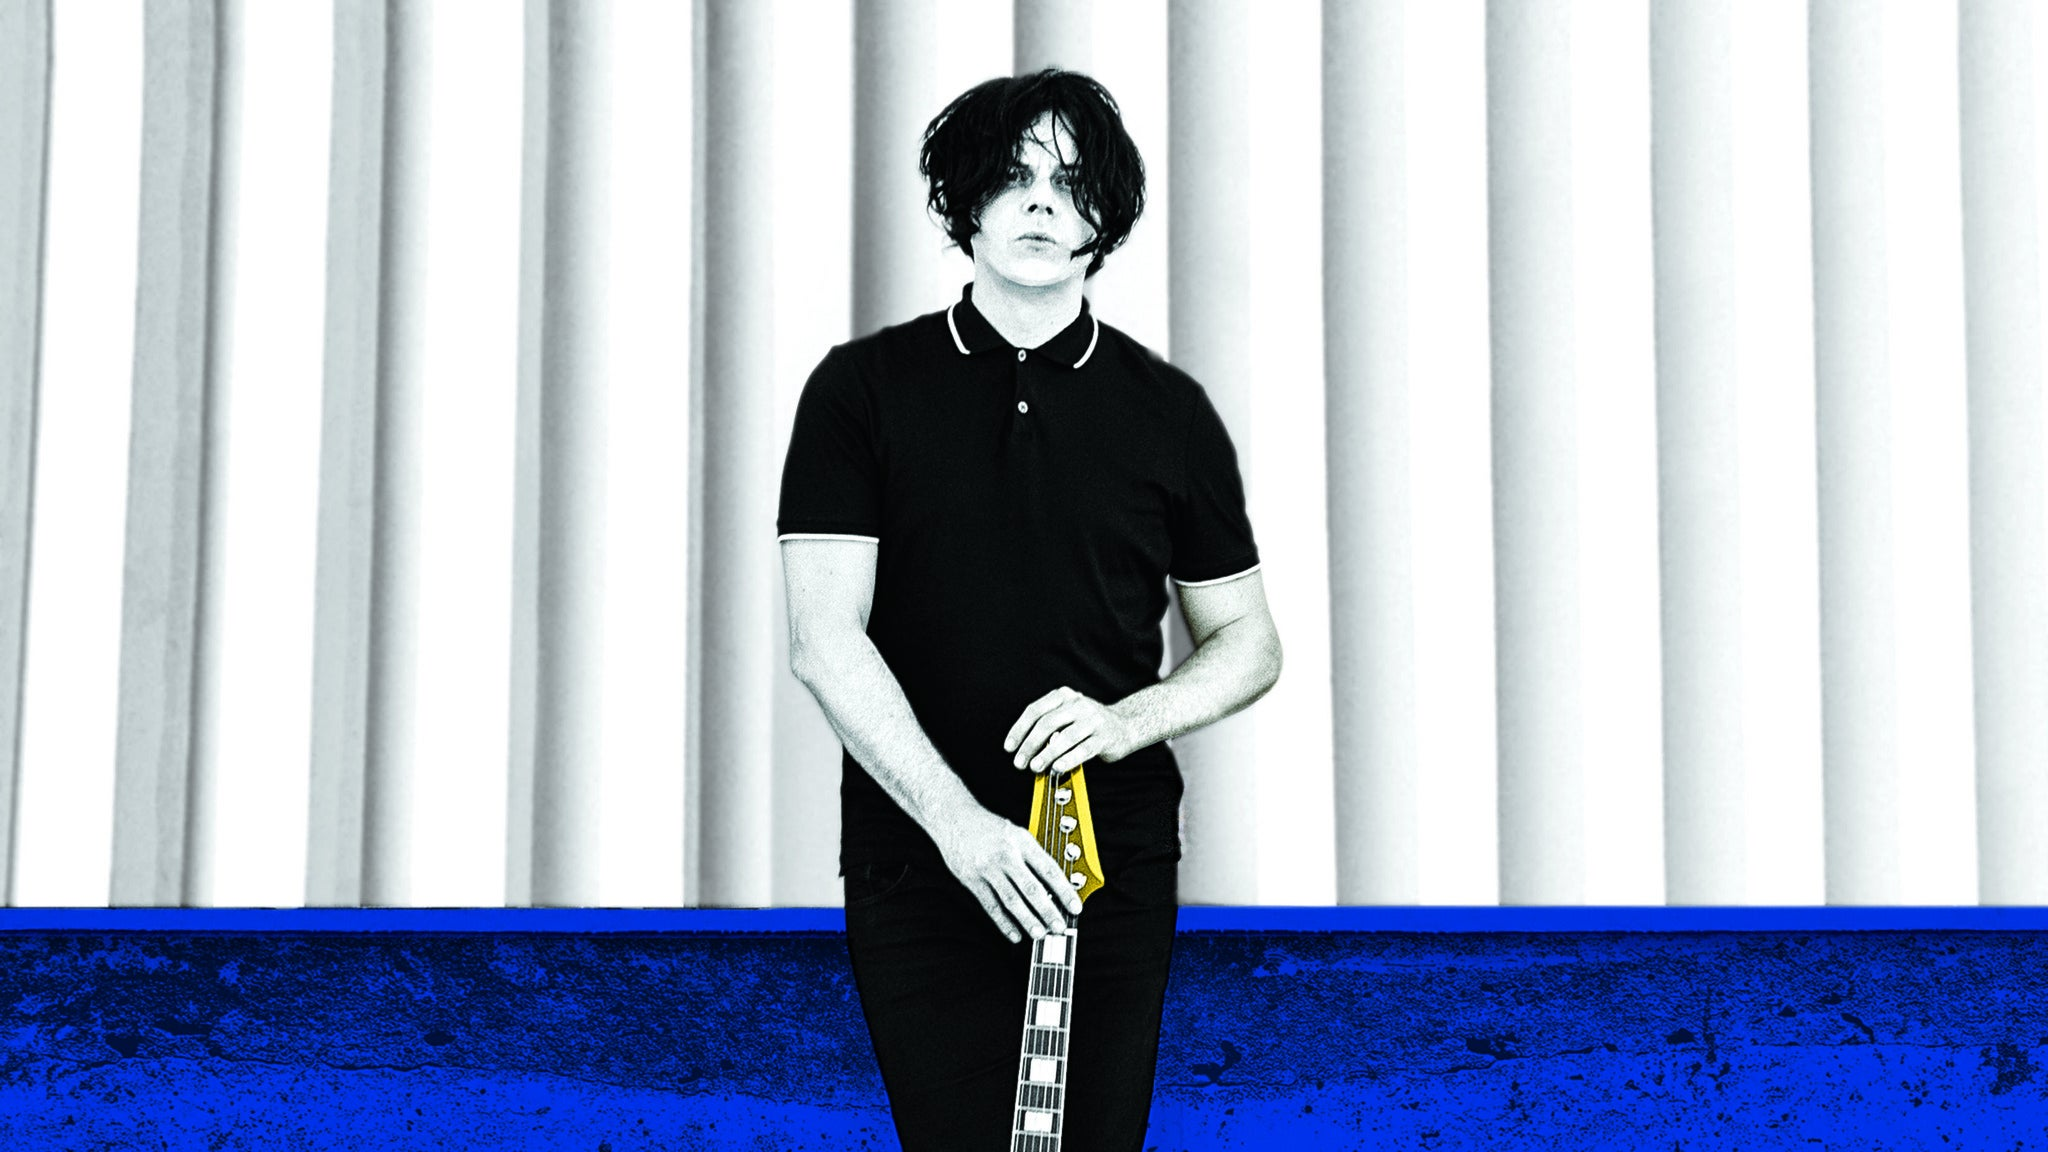 Jack White at The Bomb Factory